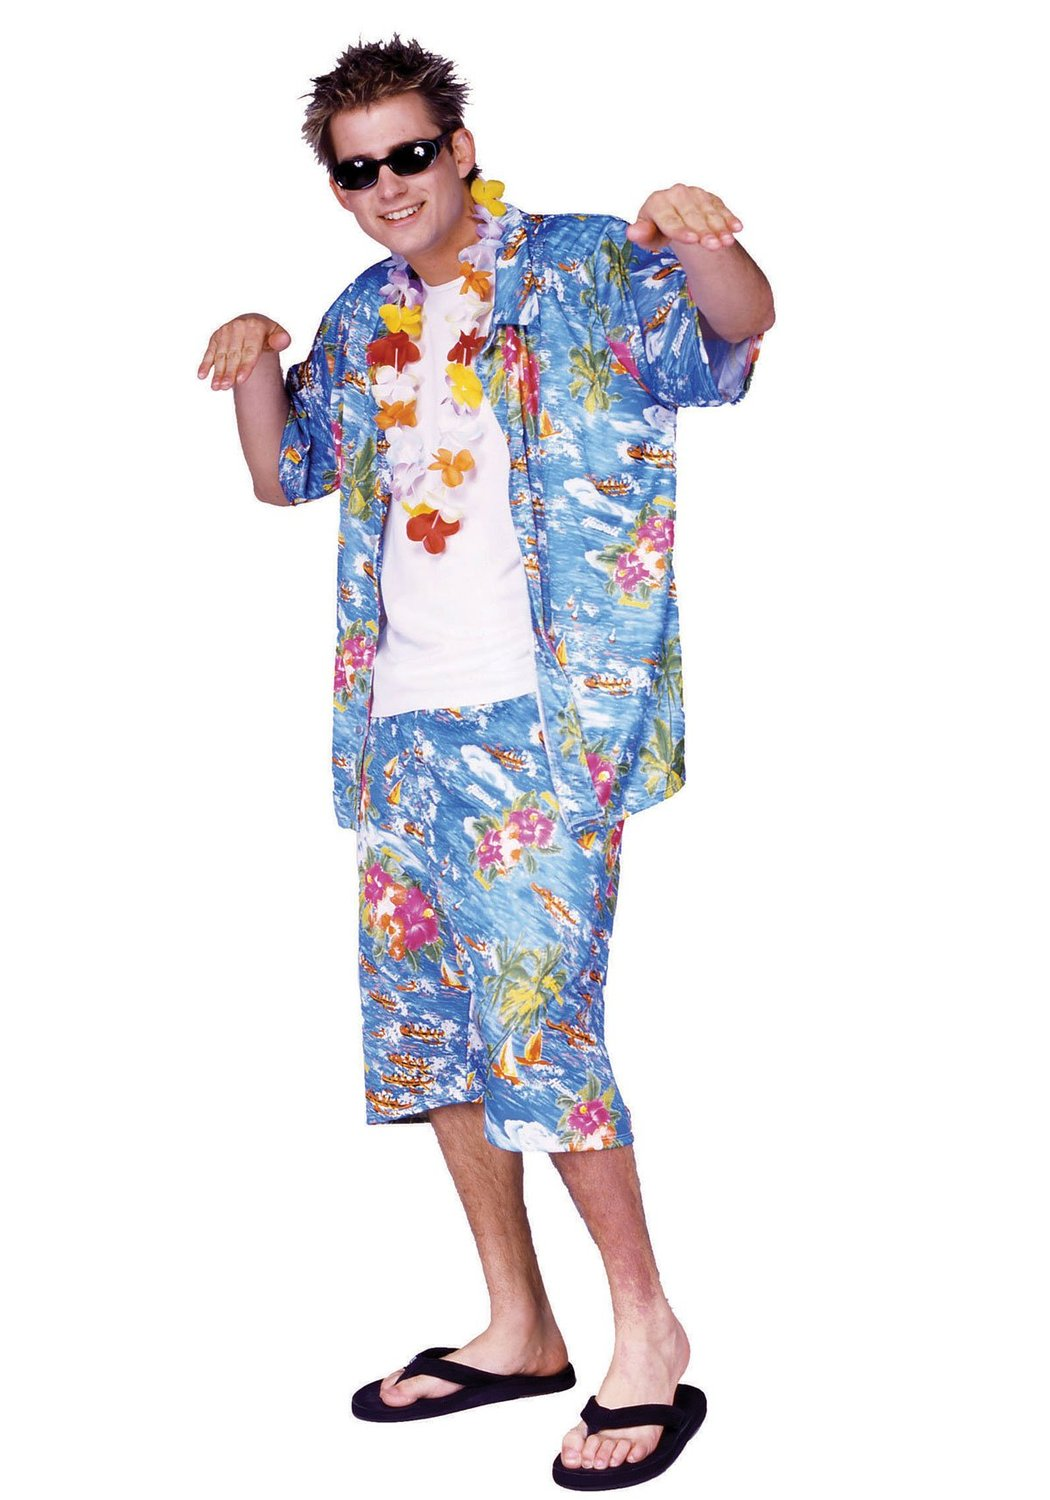 Hawaiian Costumes (for Men, Women, Kids) | PartiesCostume.com